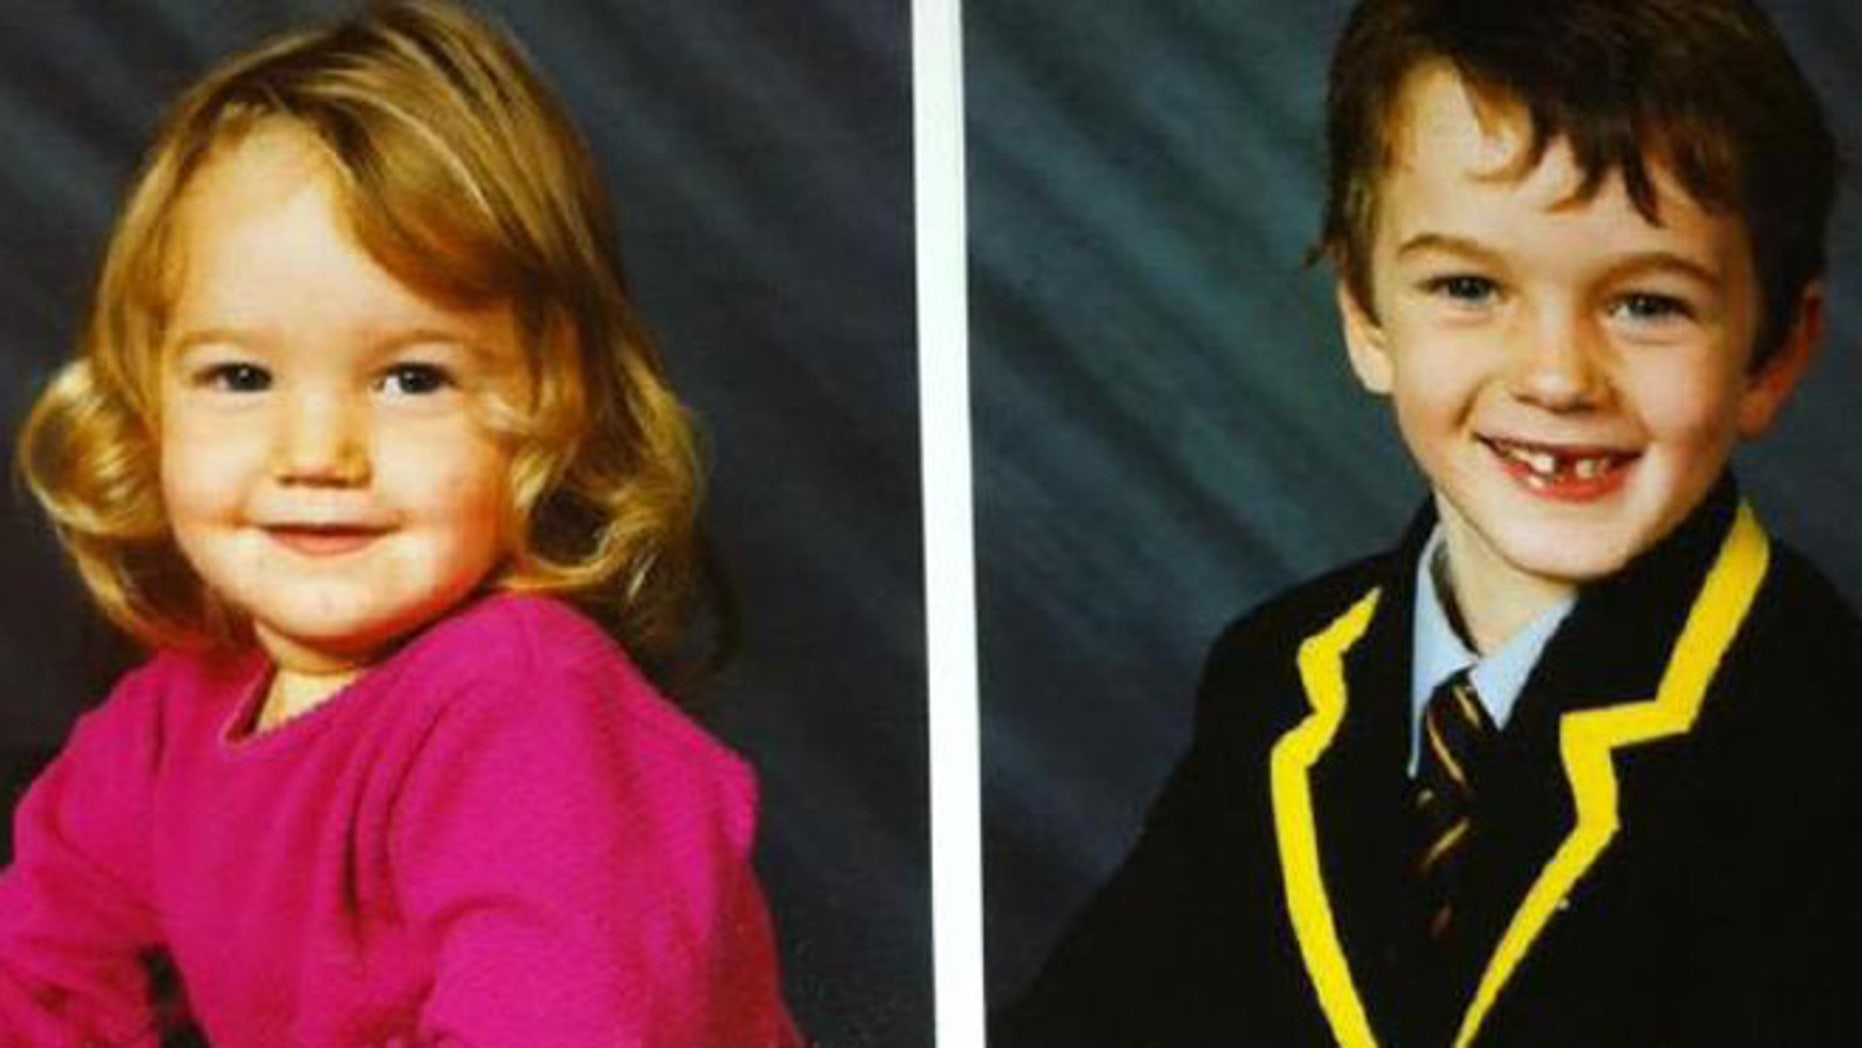 Mom Beth McGarrity has revealed how her son and daughter both told her they wanted to swap gender, within weeks of each other.